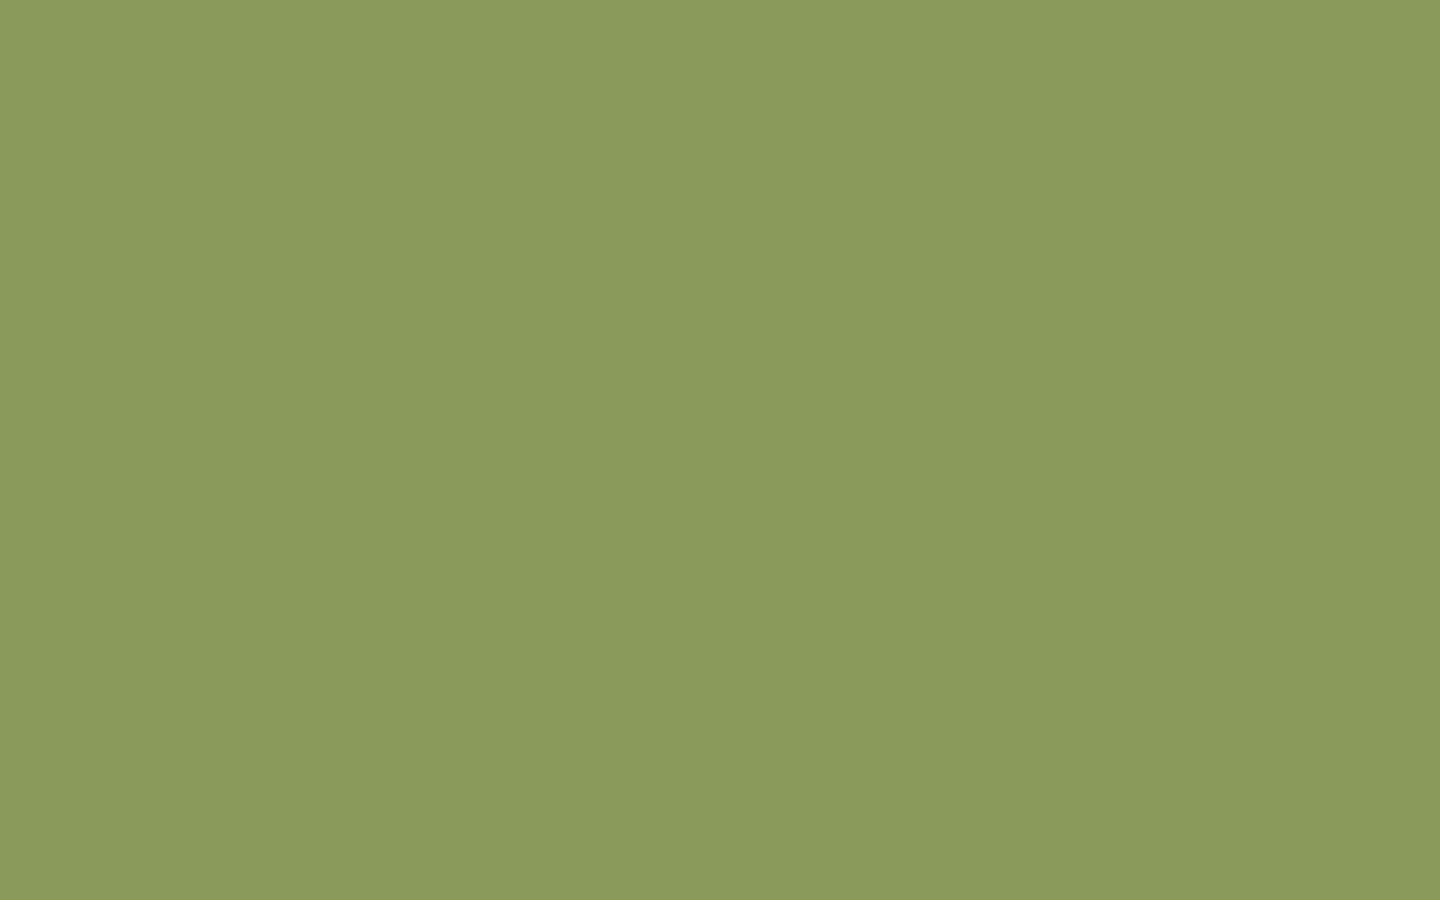 1440x900 Moss Green Solid Color Background